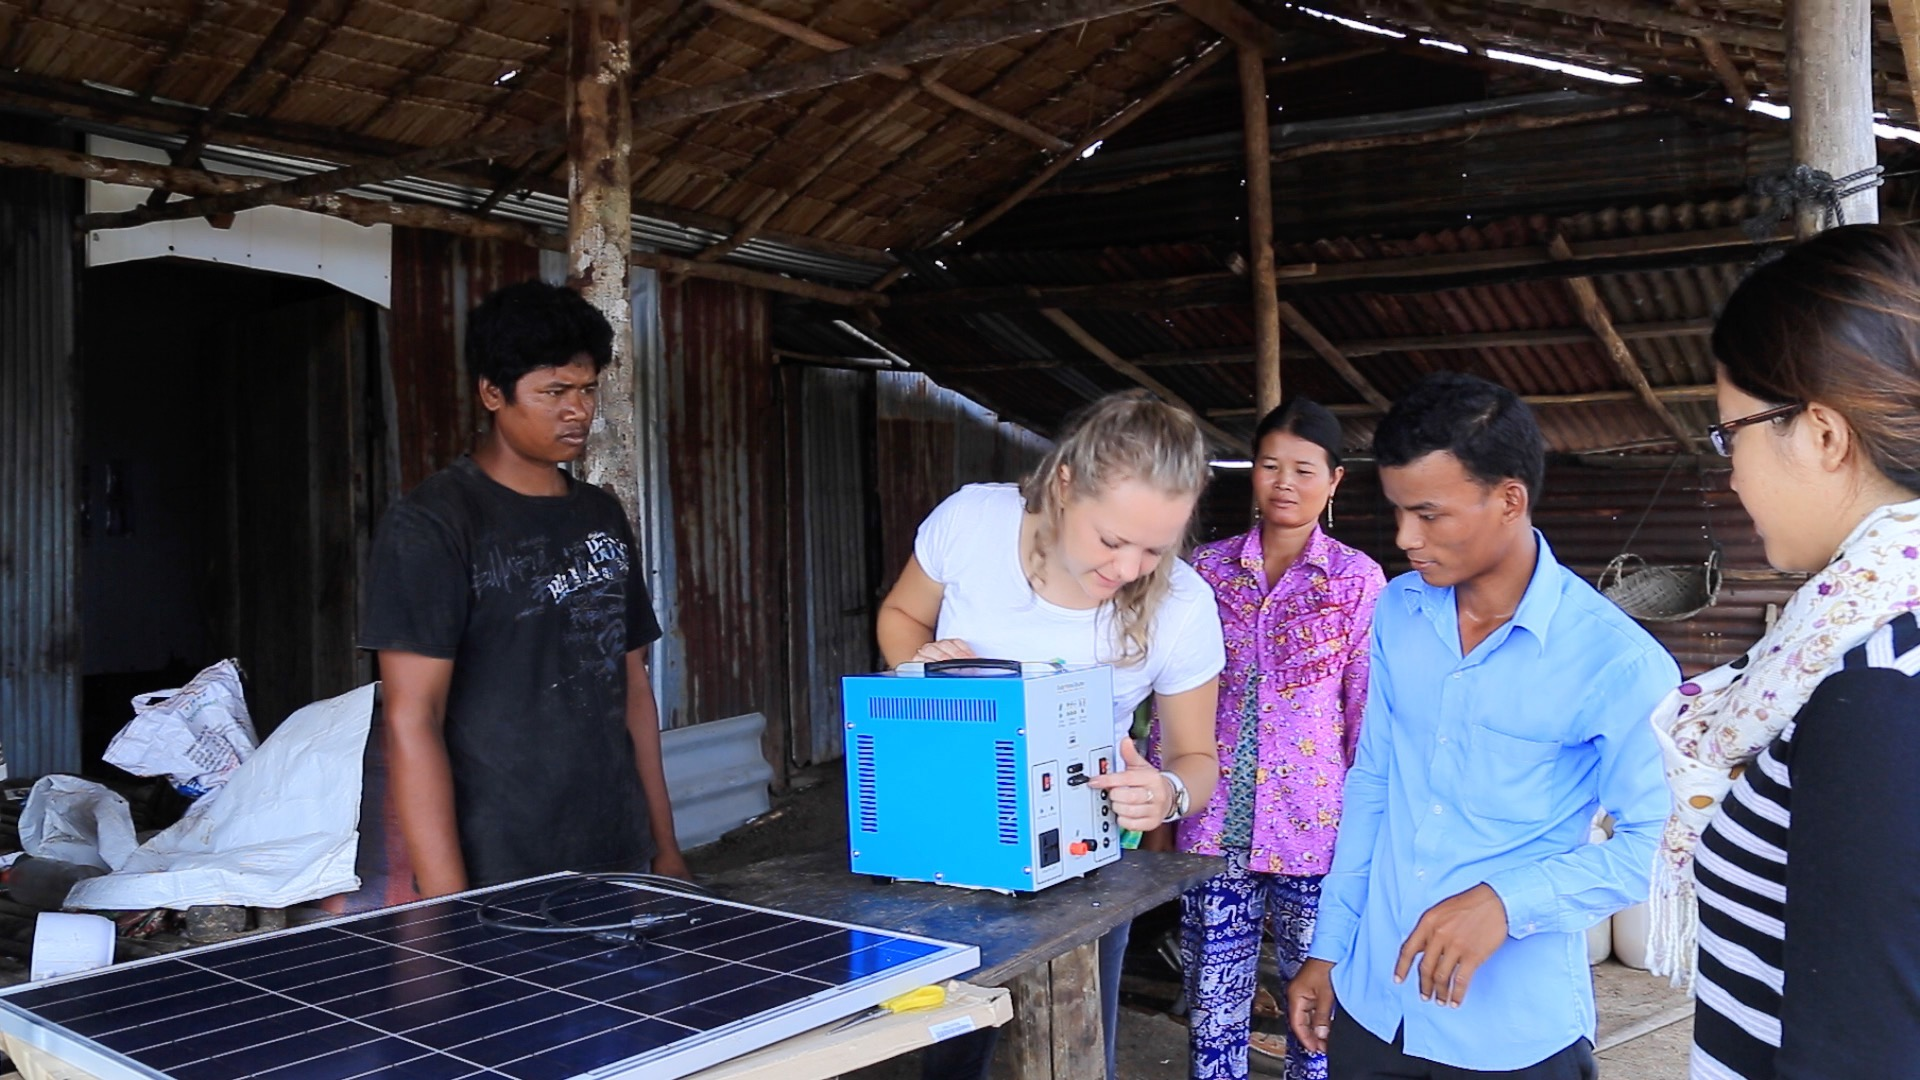 renewable energy access in developing countries